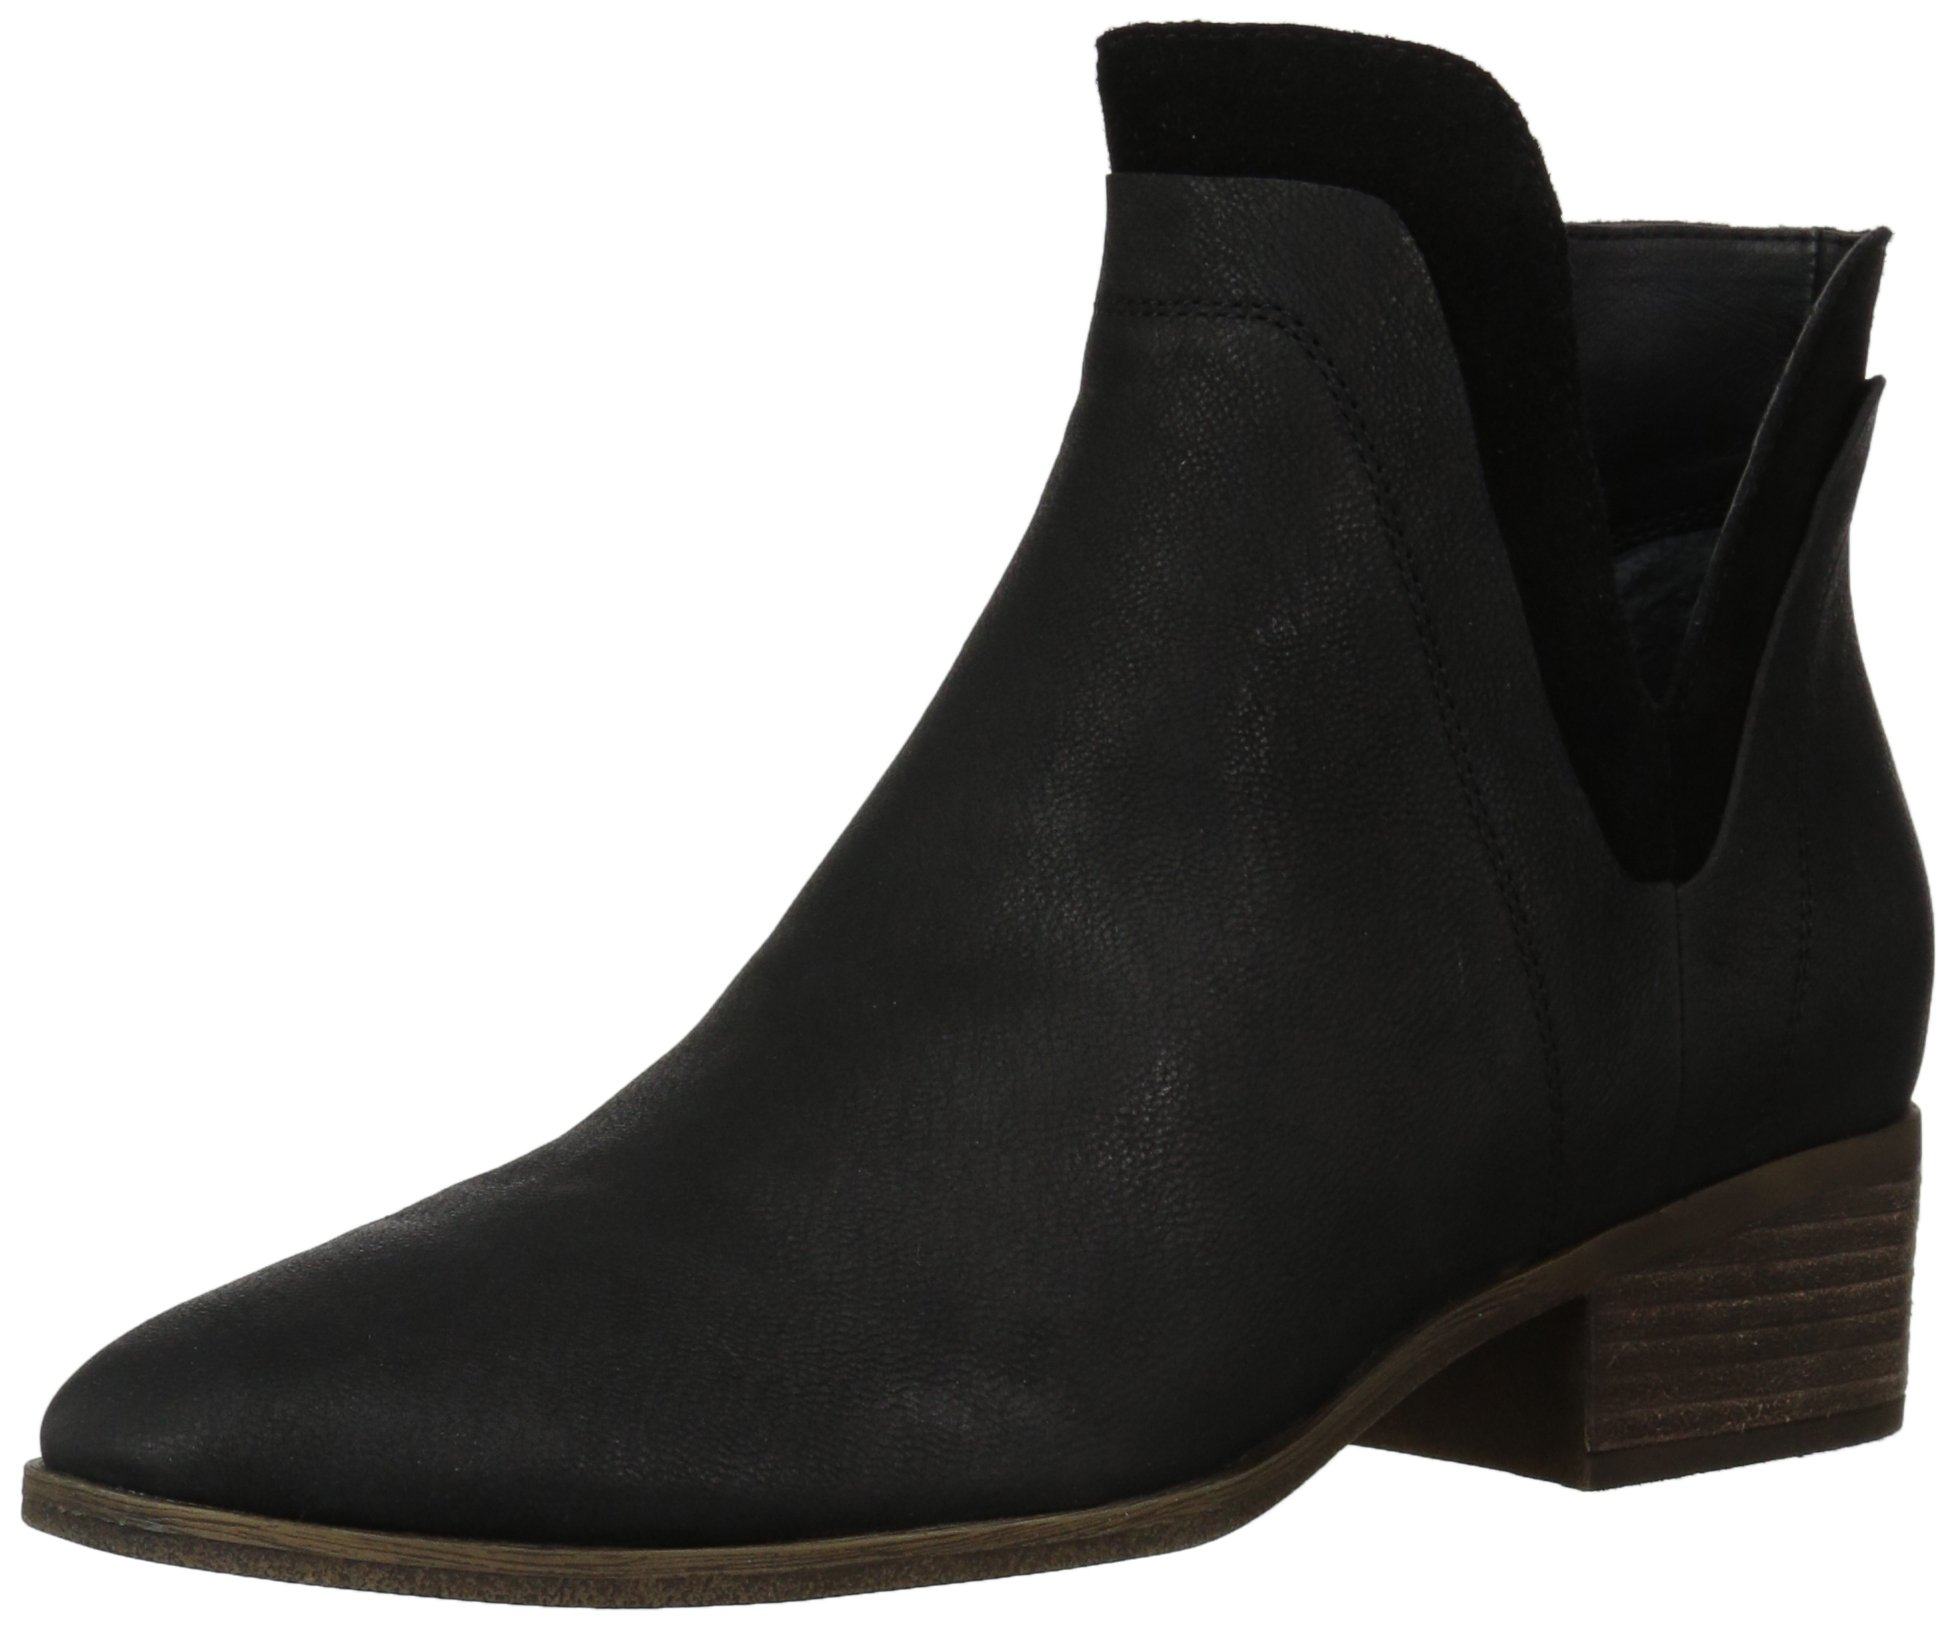 Lucky Women's LK-Lelah Ankle Boot, Black, 7.5 Medium US